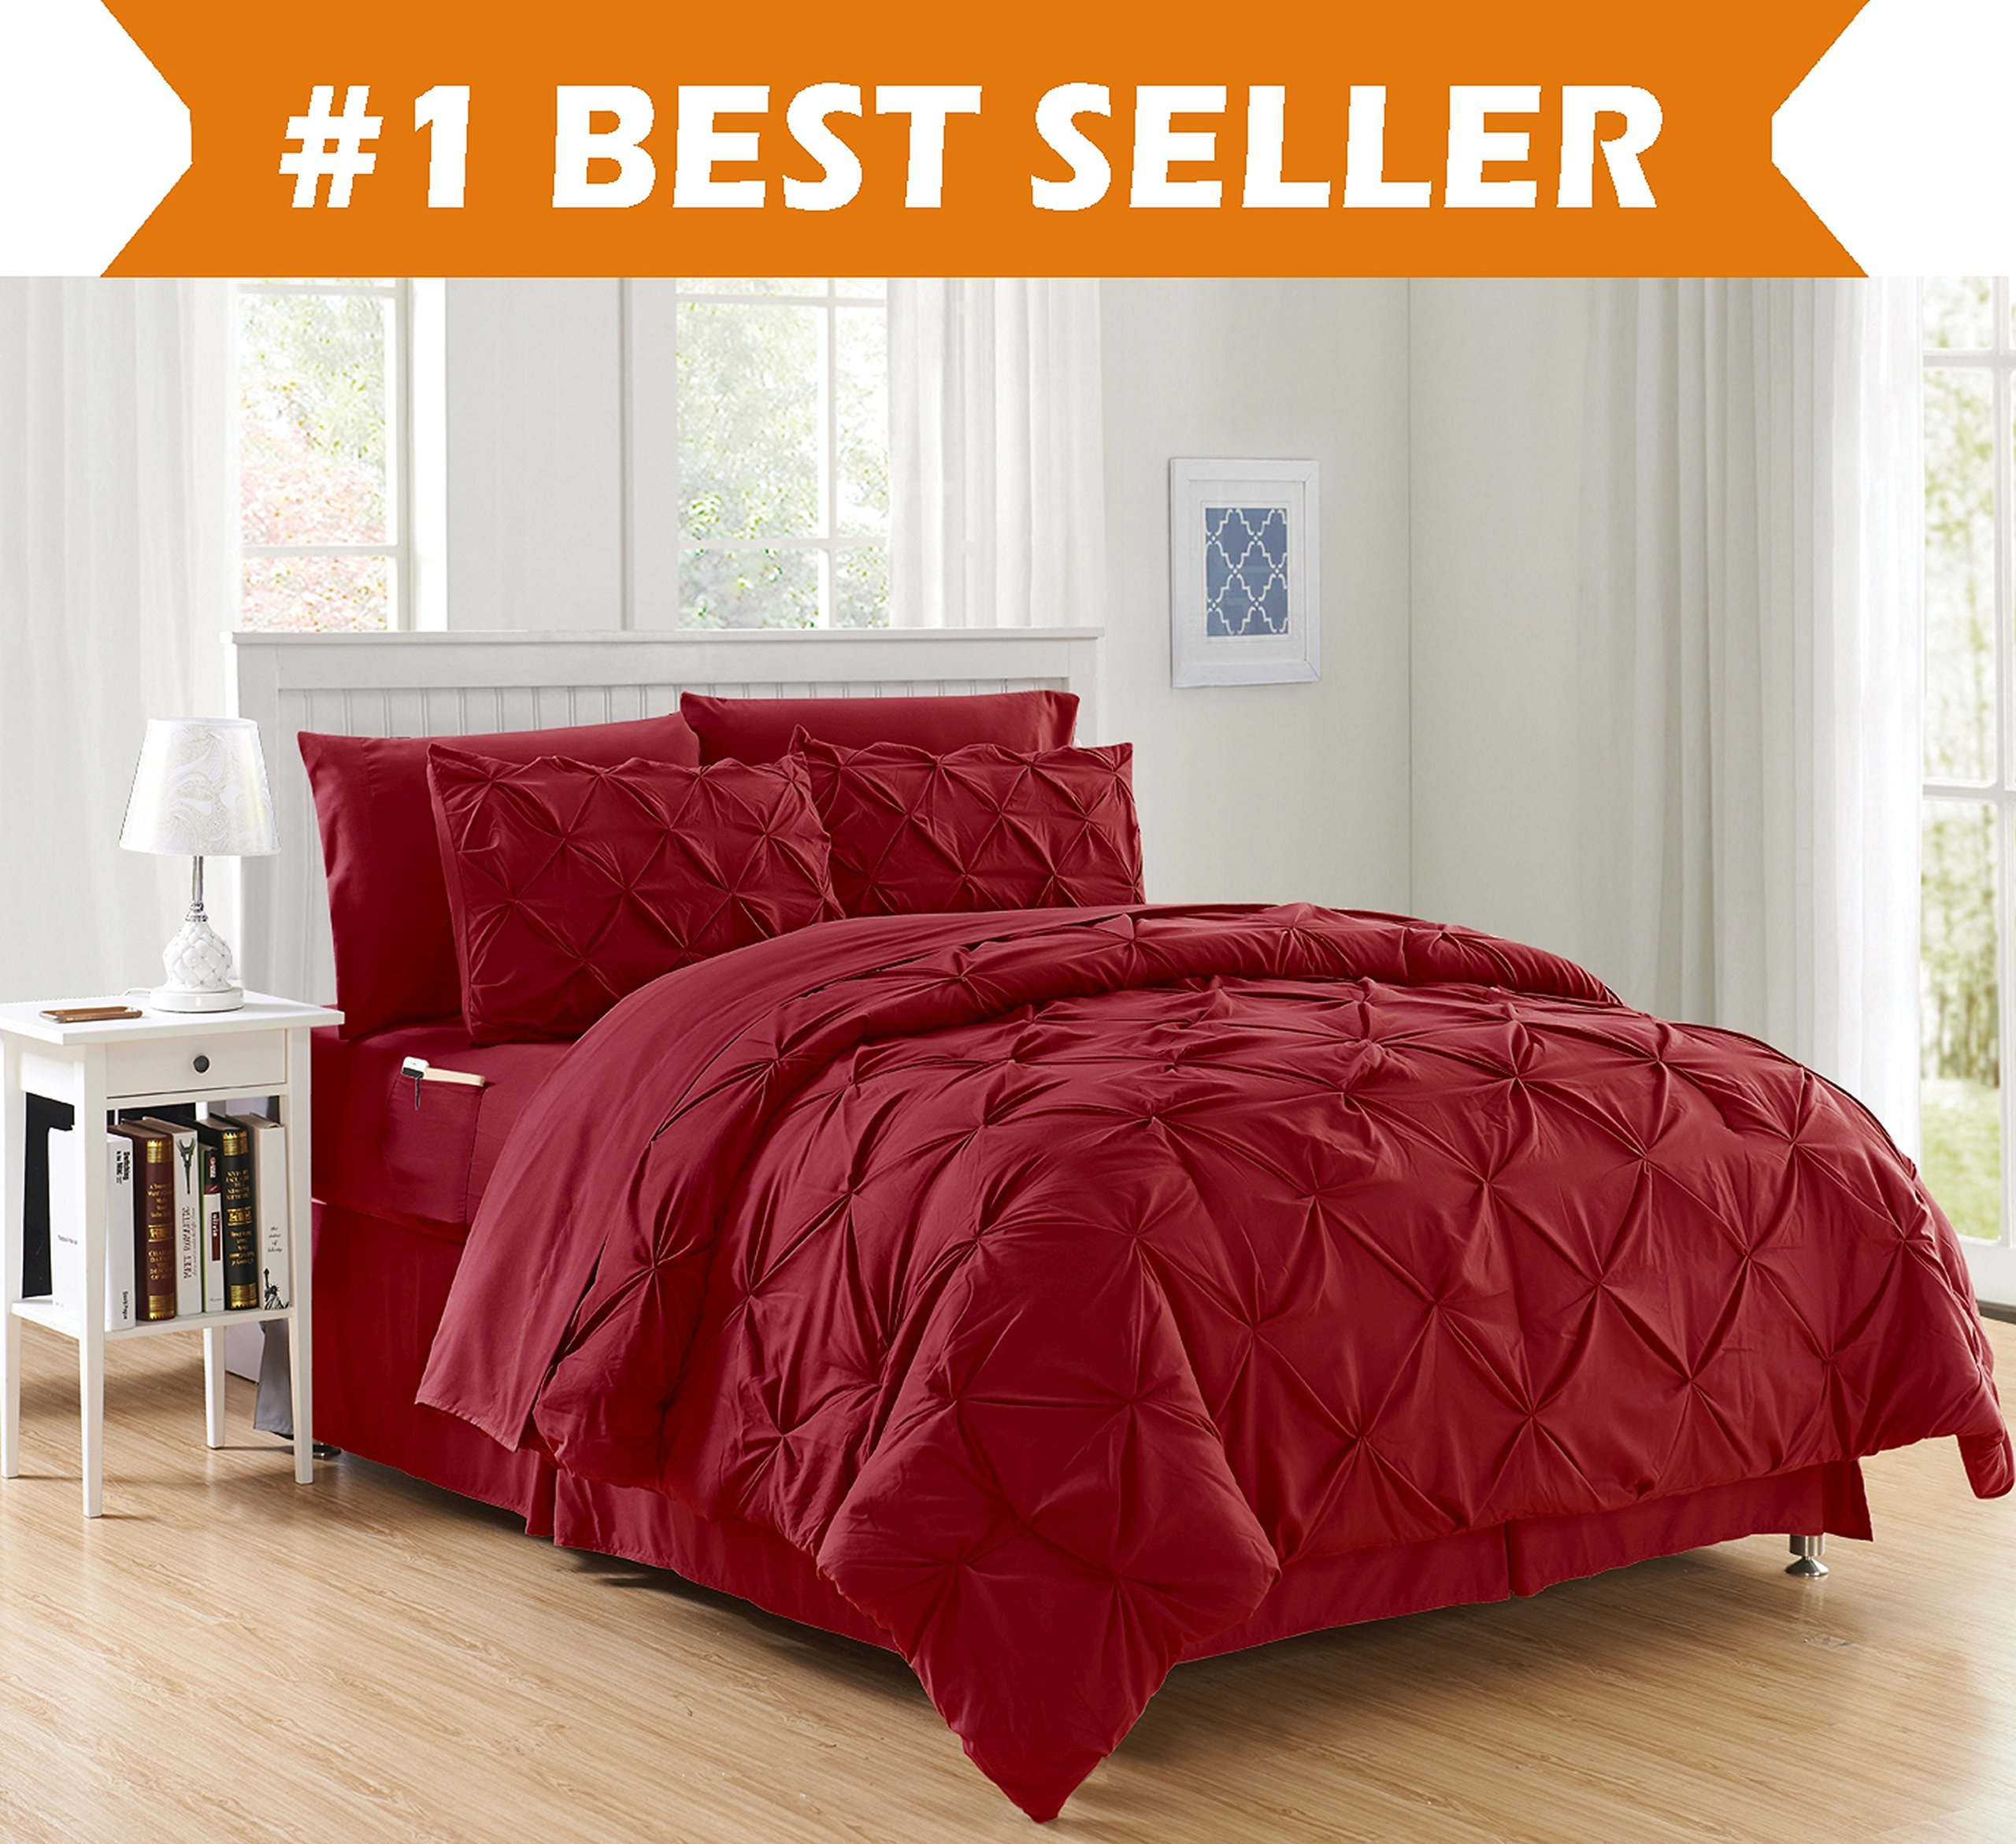 Luxury Best, Softest, Coziest 8-PIECE Bed-in-a-Bag Comforter Set on Amazon! Elegant Comfort - Silky Soft Complete Set Includes Bed Sheet Set with Double Sided Storage Pockets, Full/Queen, Burgundy